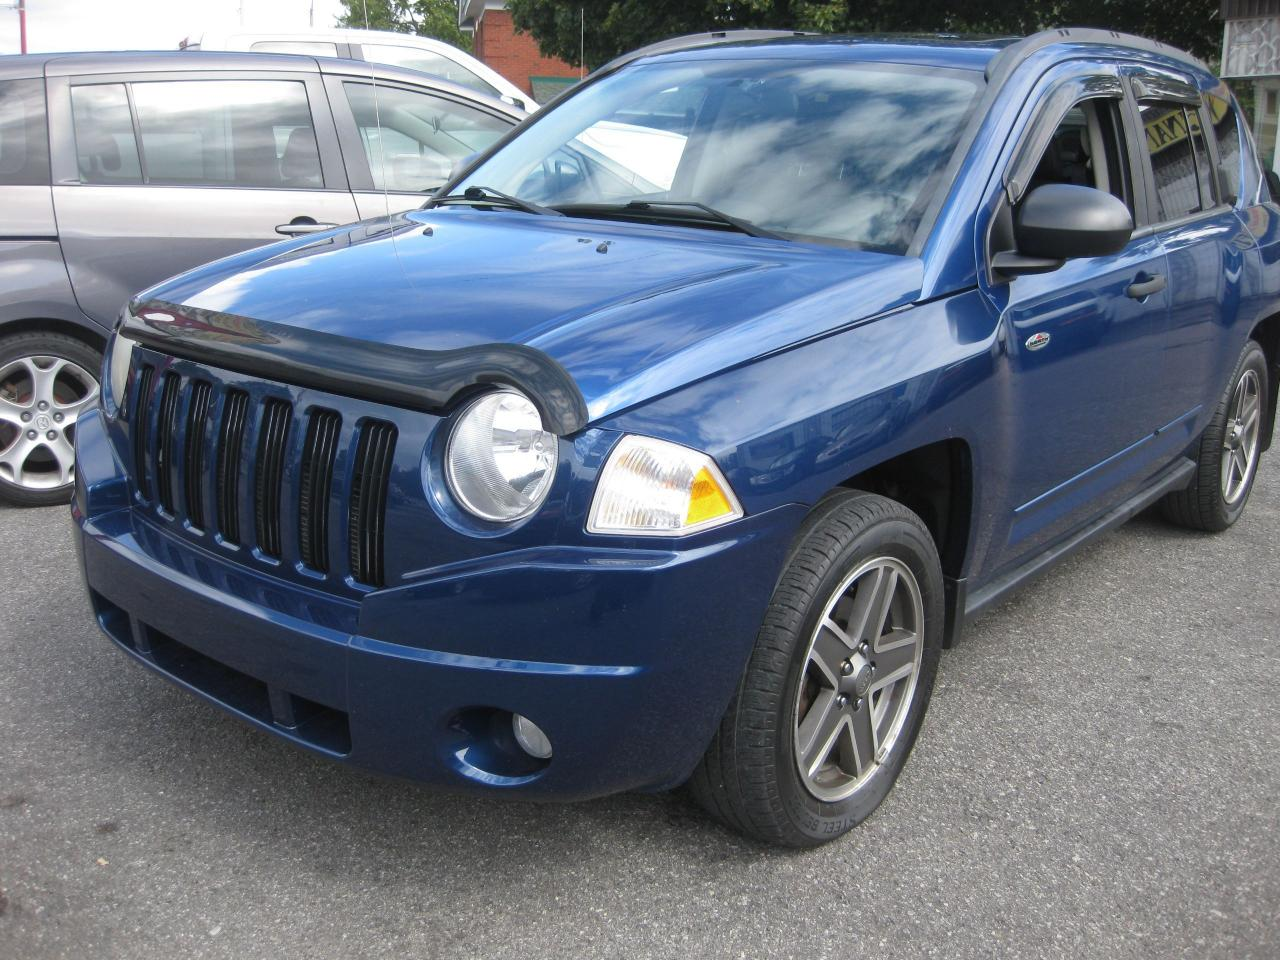 2009 Jeep Compass Rocky Mountain 2.4L 4cyl 4WD Auto Sunroof AC PL PW